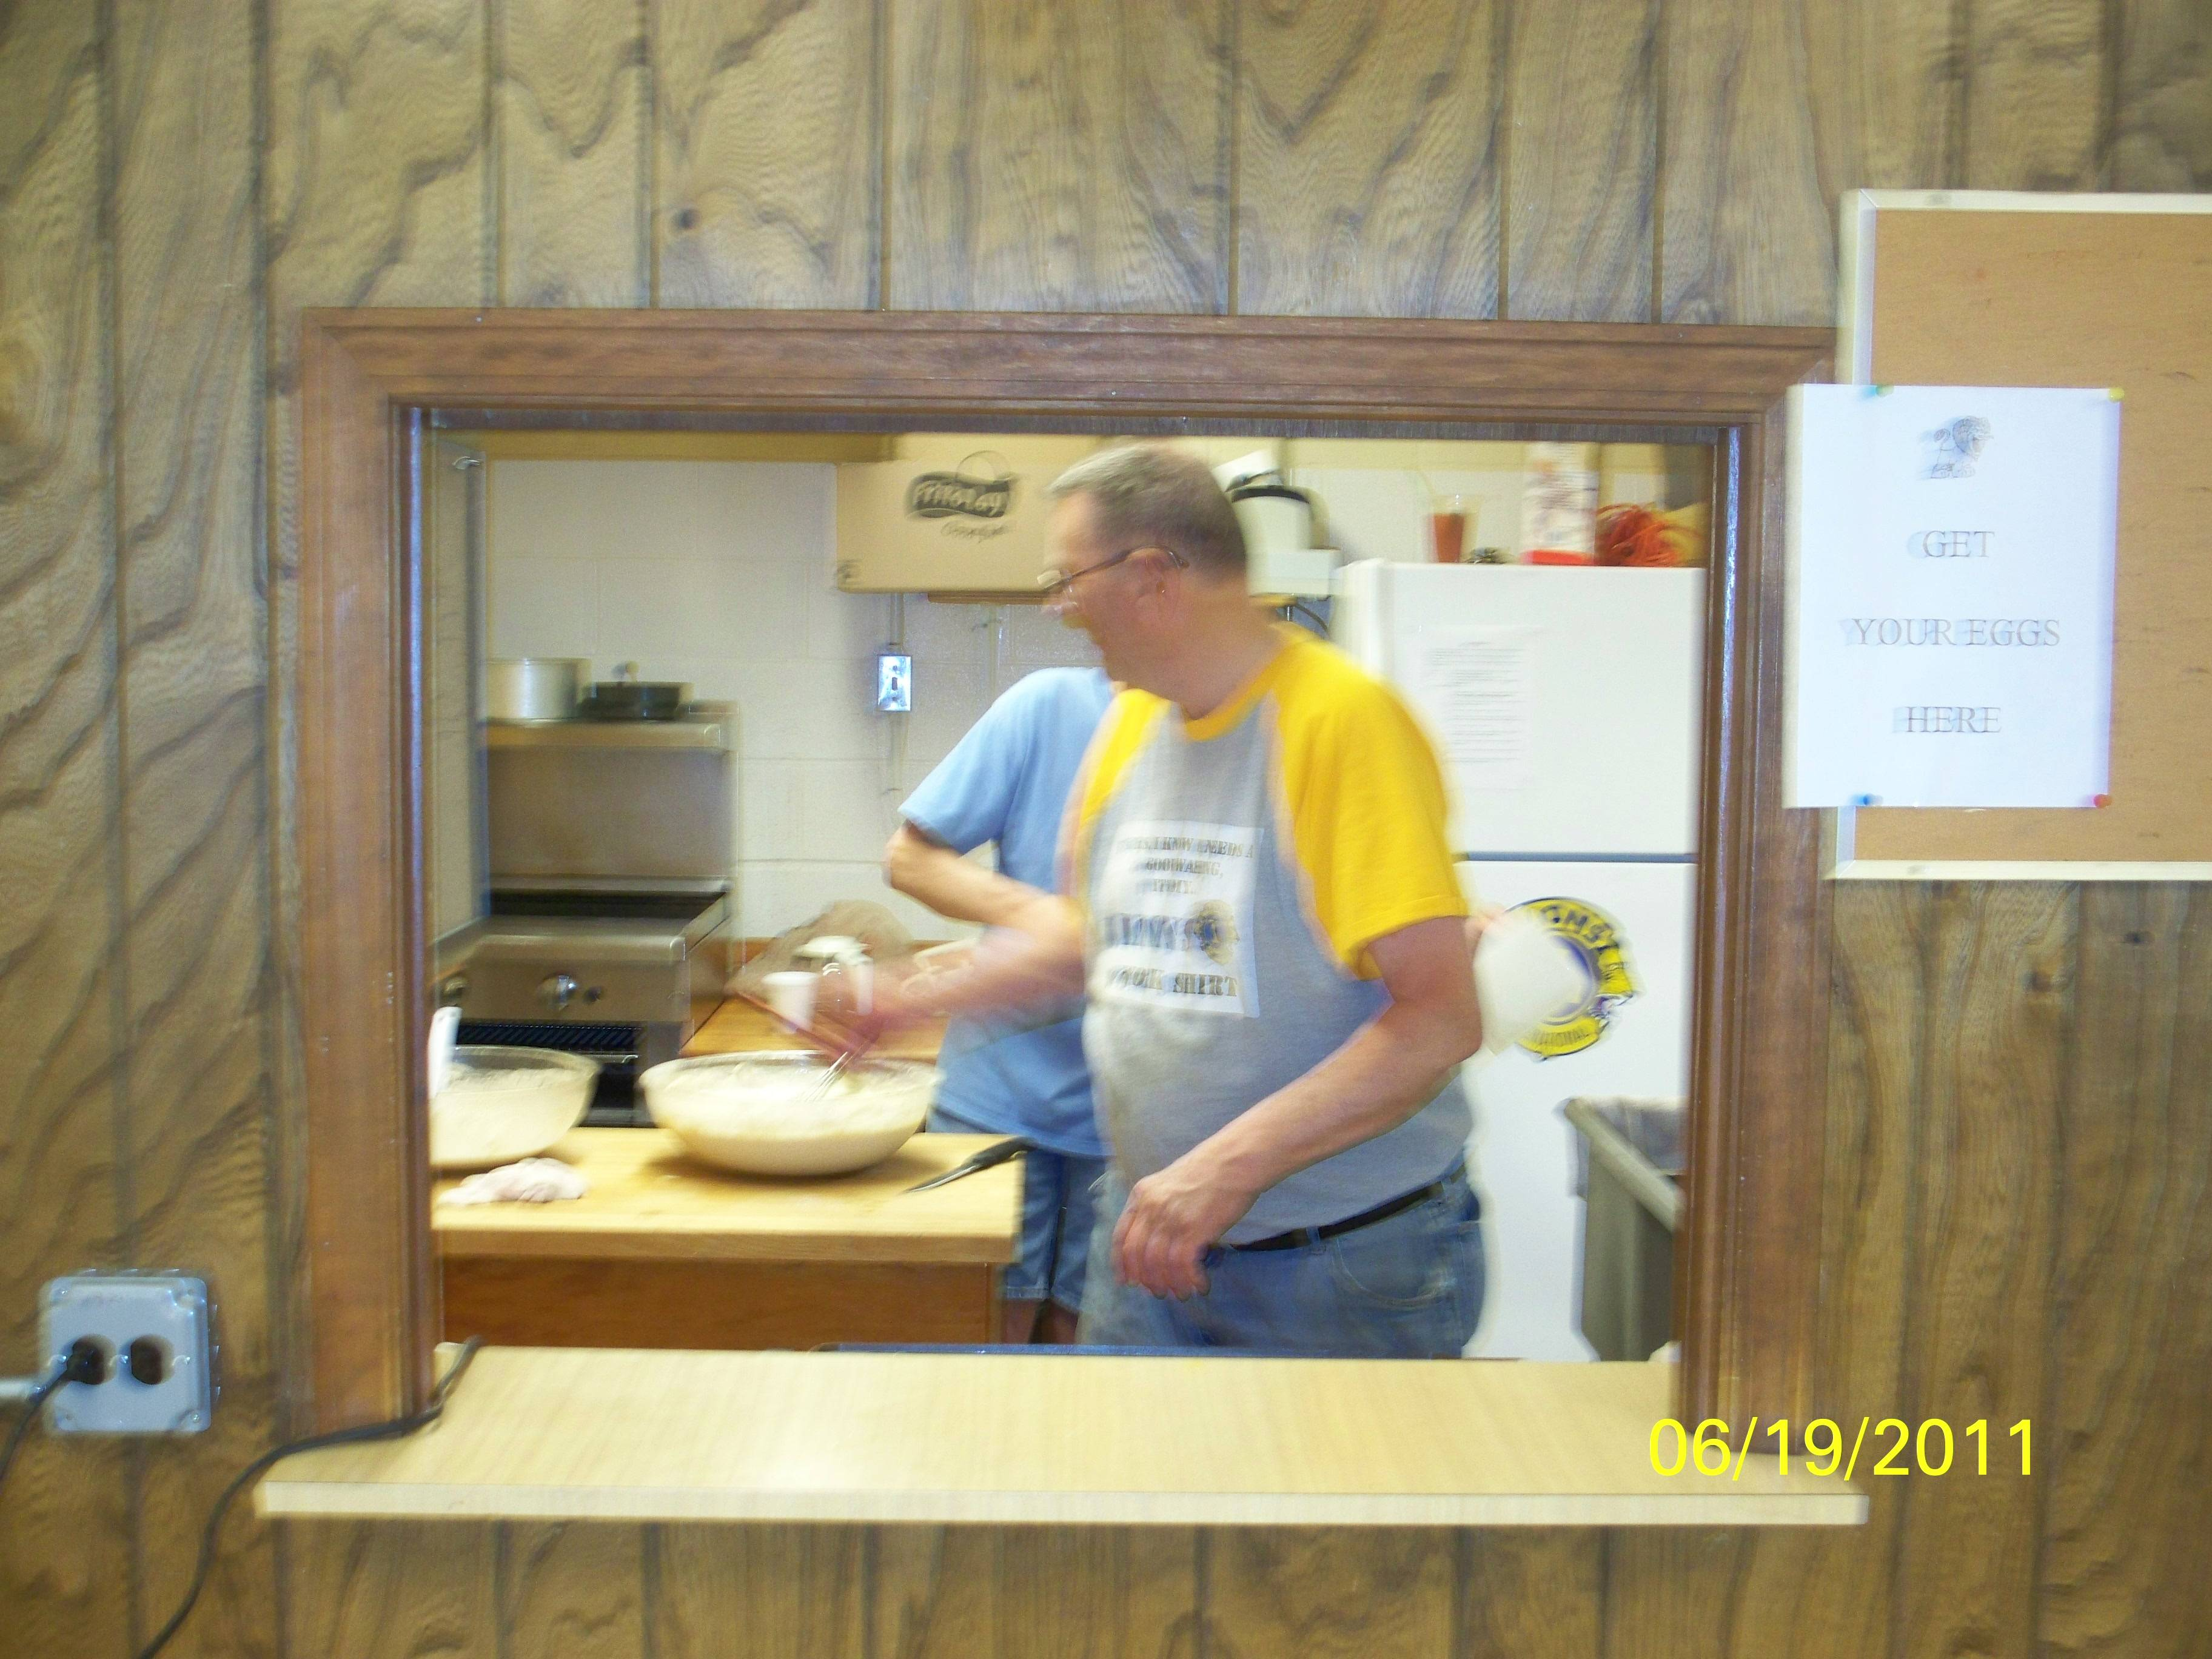 Lion Joe Groth in the Kitchen at the Lions Club